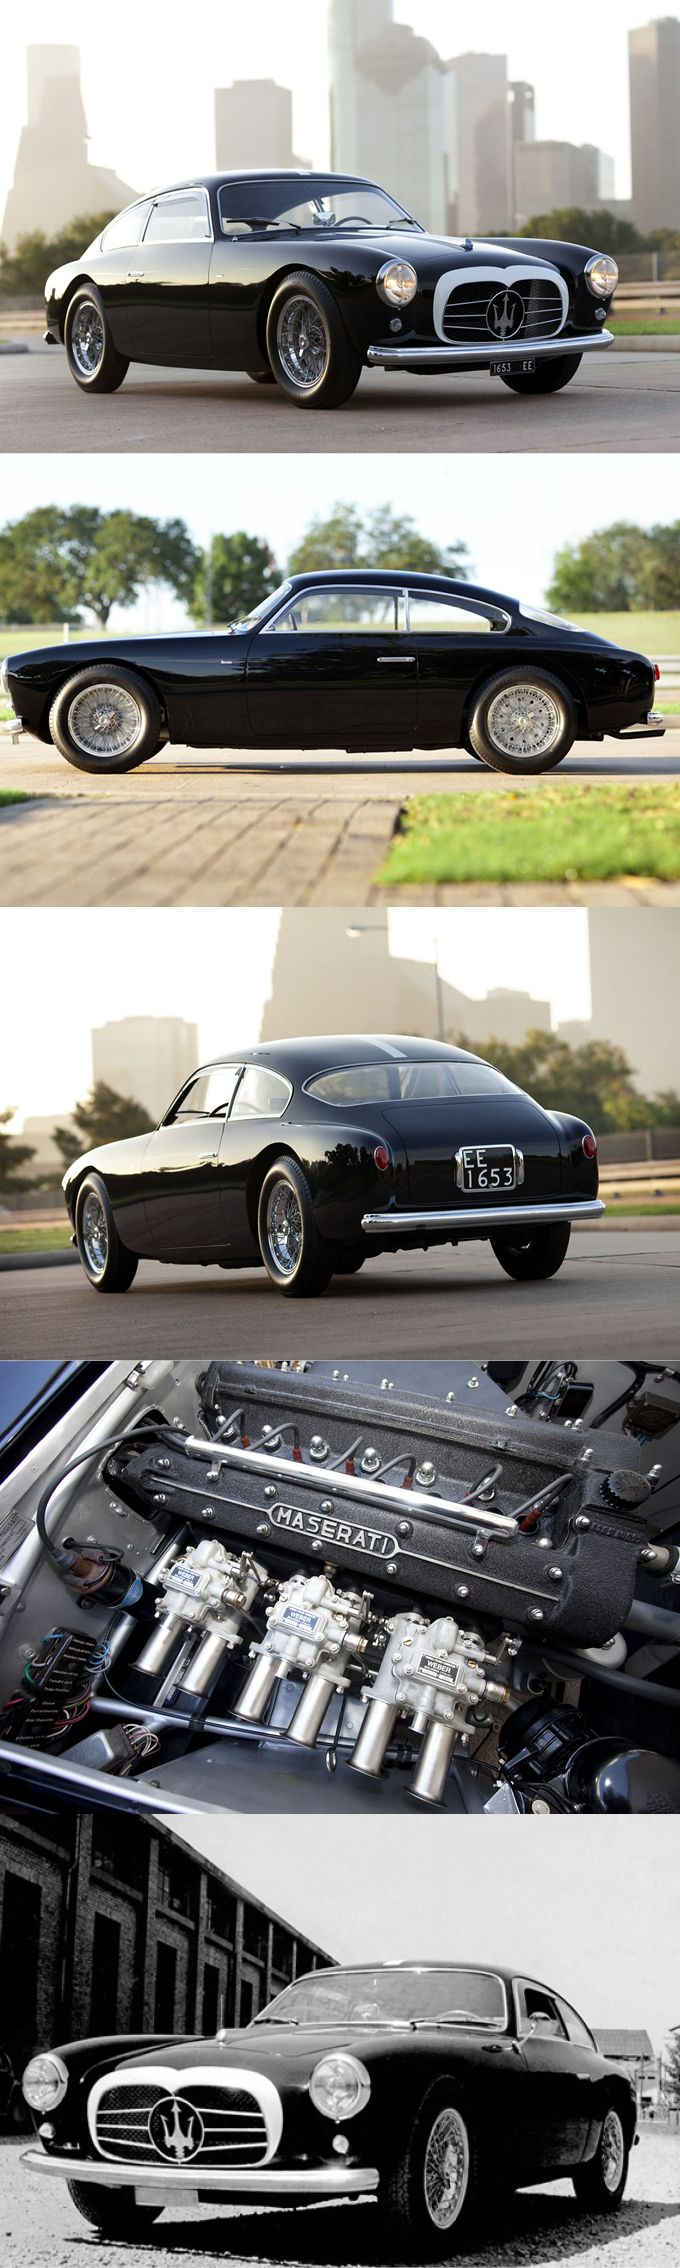 1955 Maserati A6G/54 / s/n 2105 1 of 21 produced / 150hp 2.0l L6 / black white / Italy / 17-293 http://amzn.to/2sAXIva